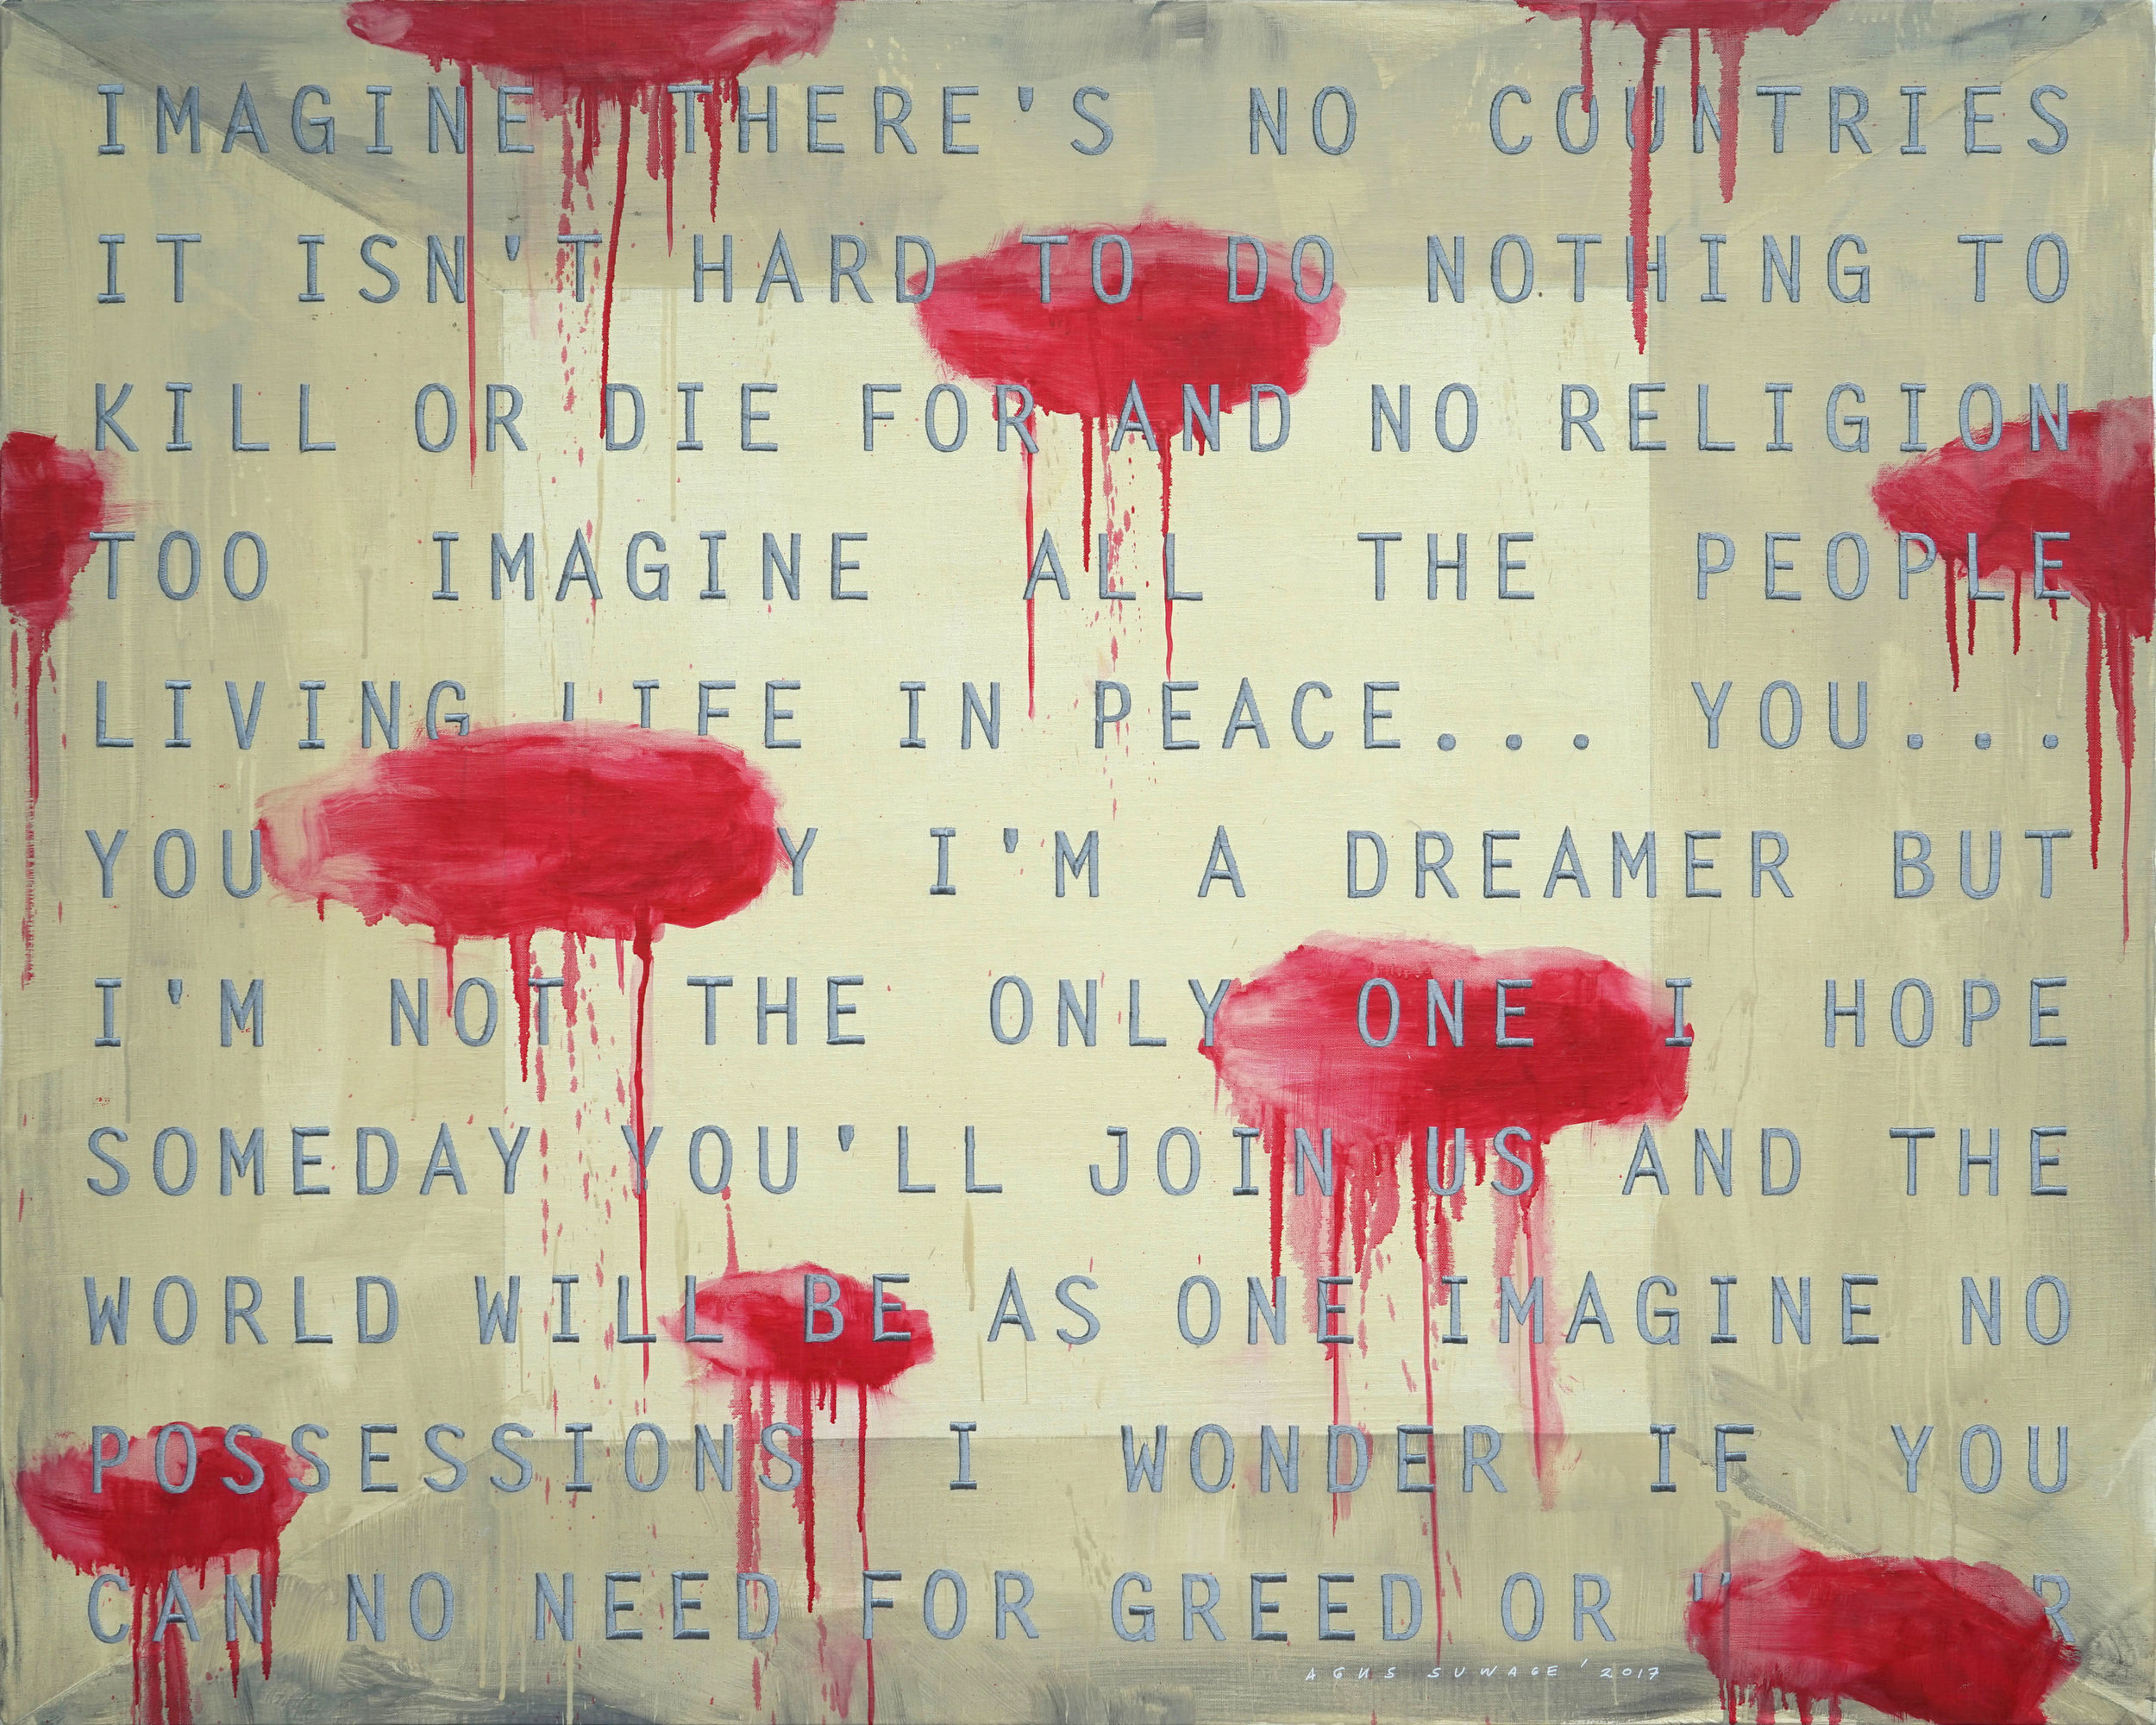 Agus Suwage, 'Imagine #3', 2017, acrylic and embroidery on canvas, 120 x 150cm. Image courtesy of the artist and Nadi Gallery.